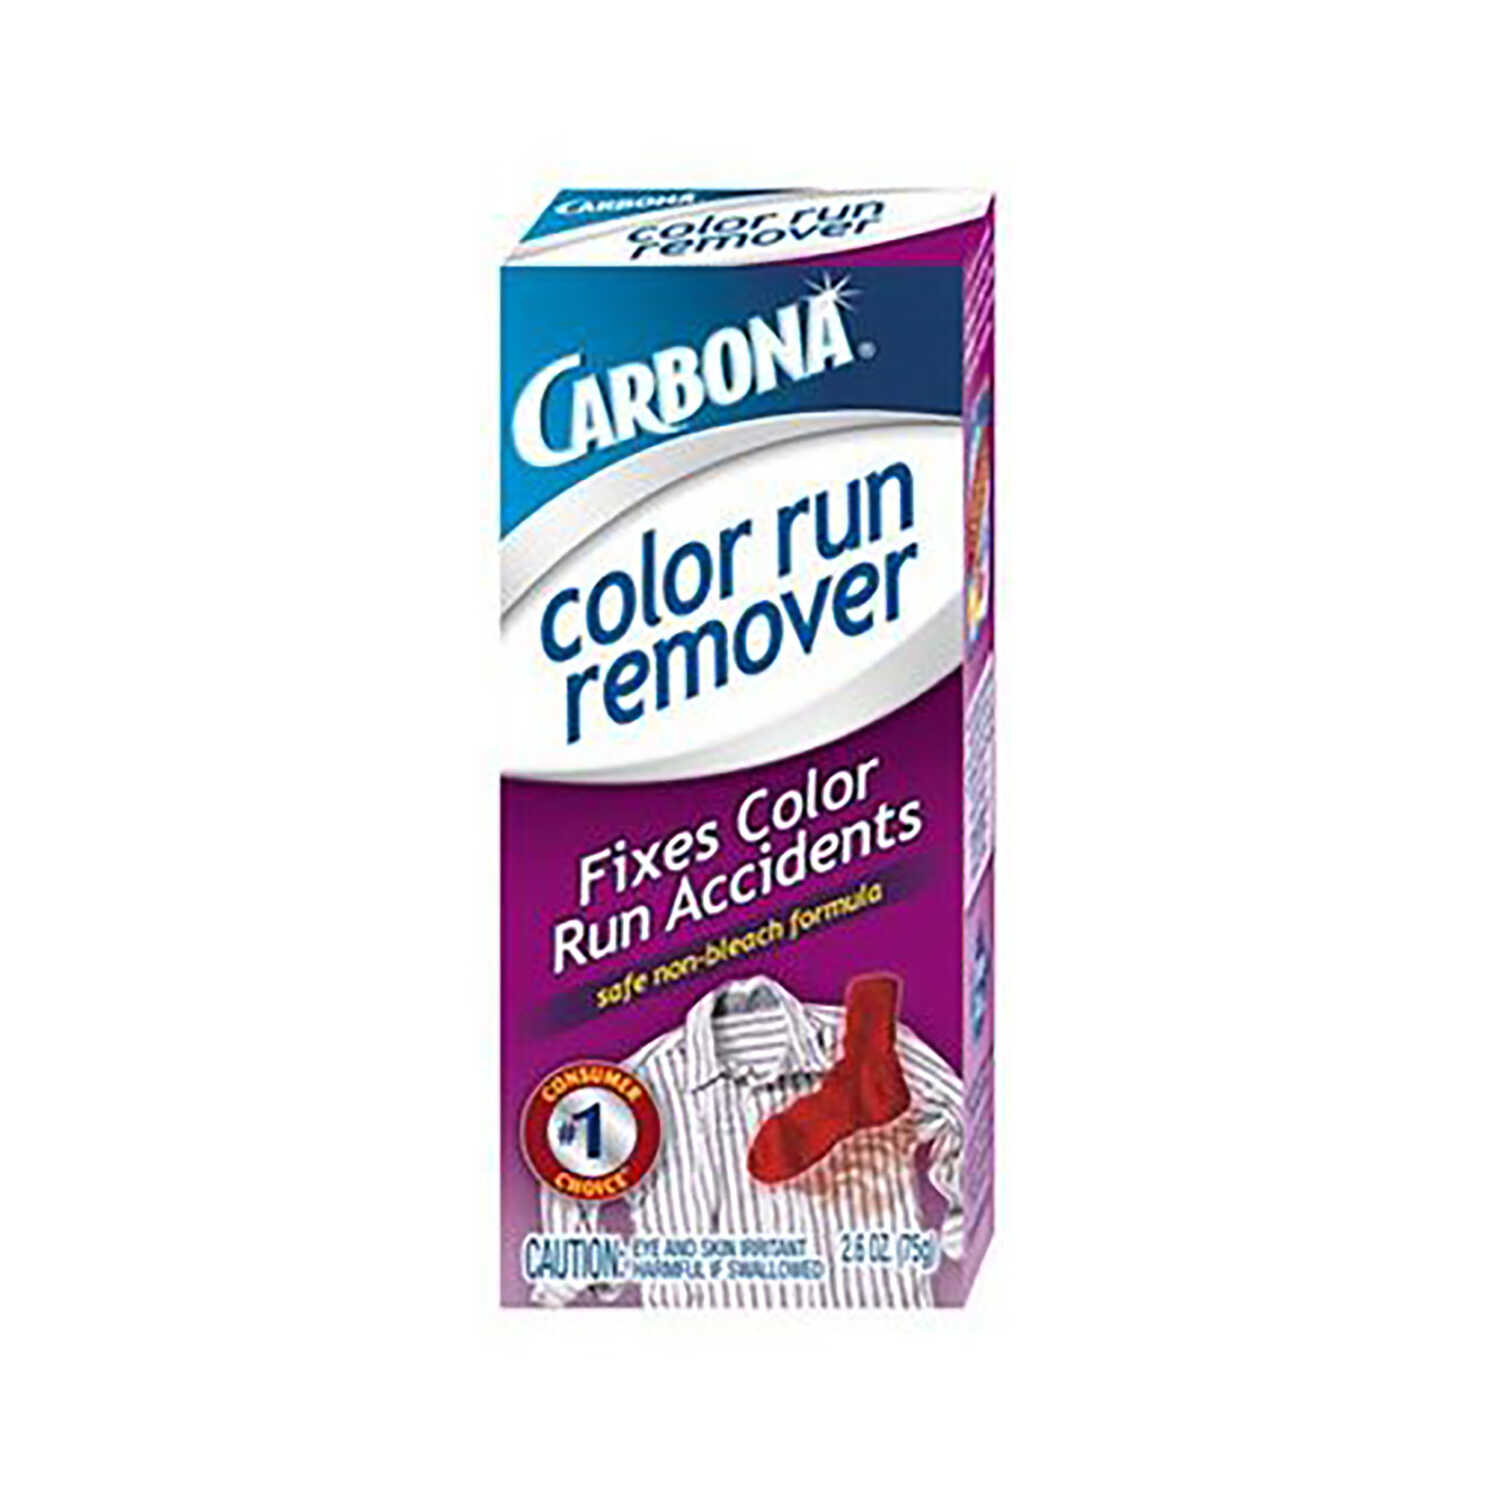 Carbona  No Scent Bleach Color Run Remover  Powder  2.6 oz.